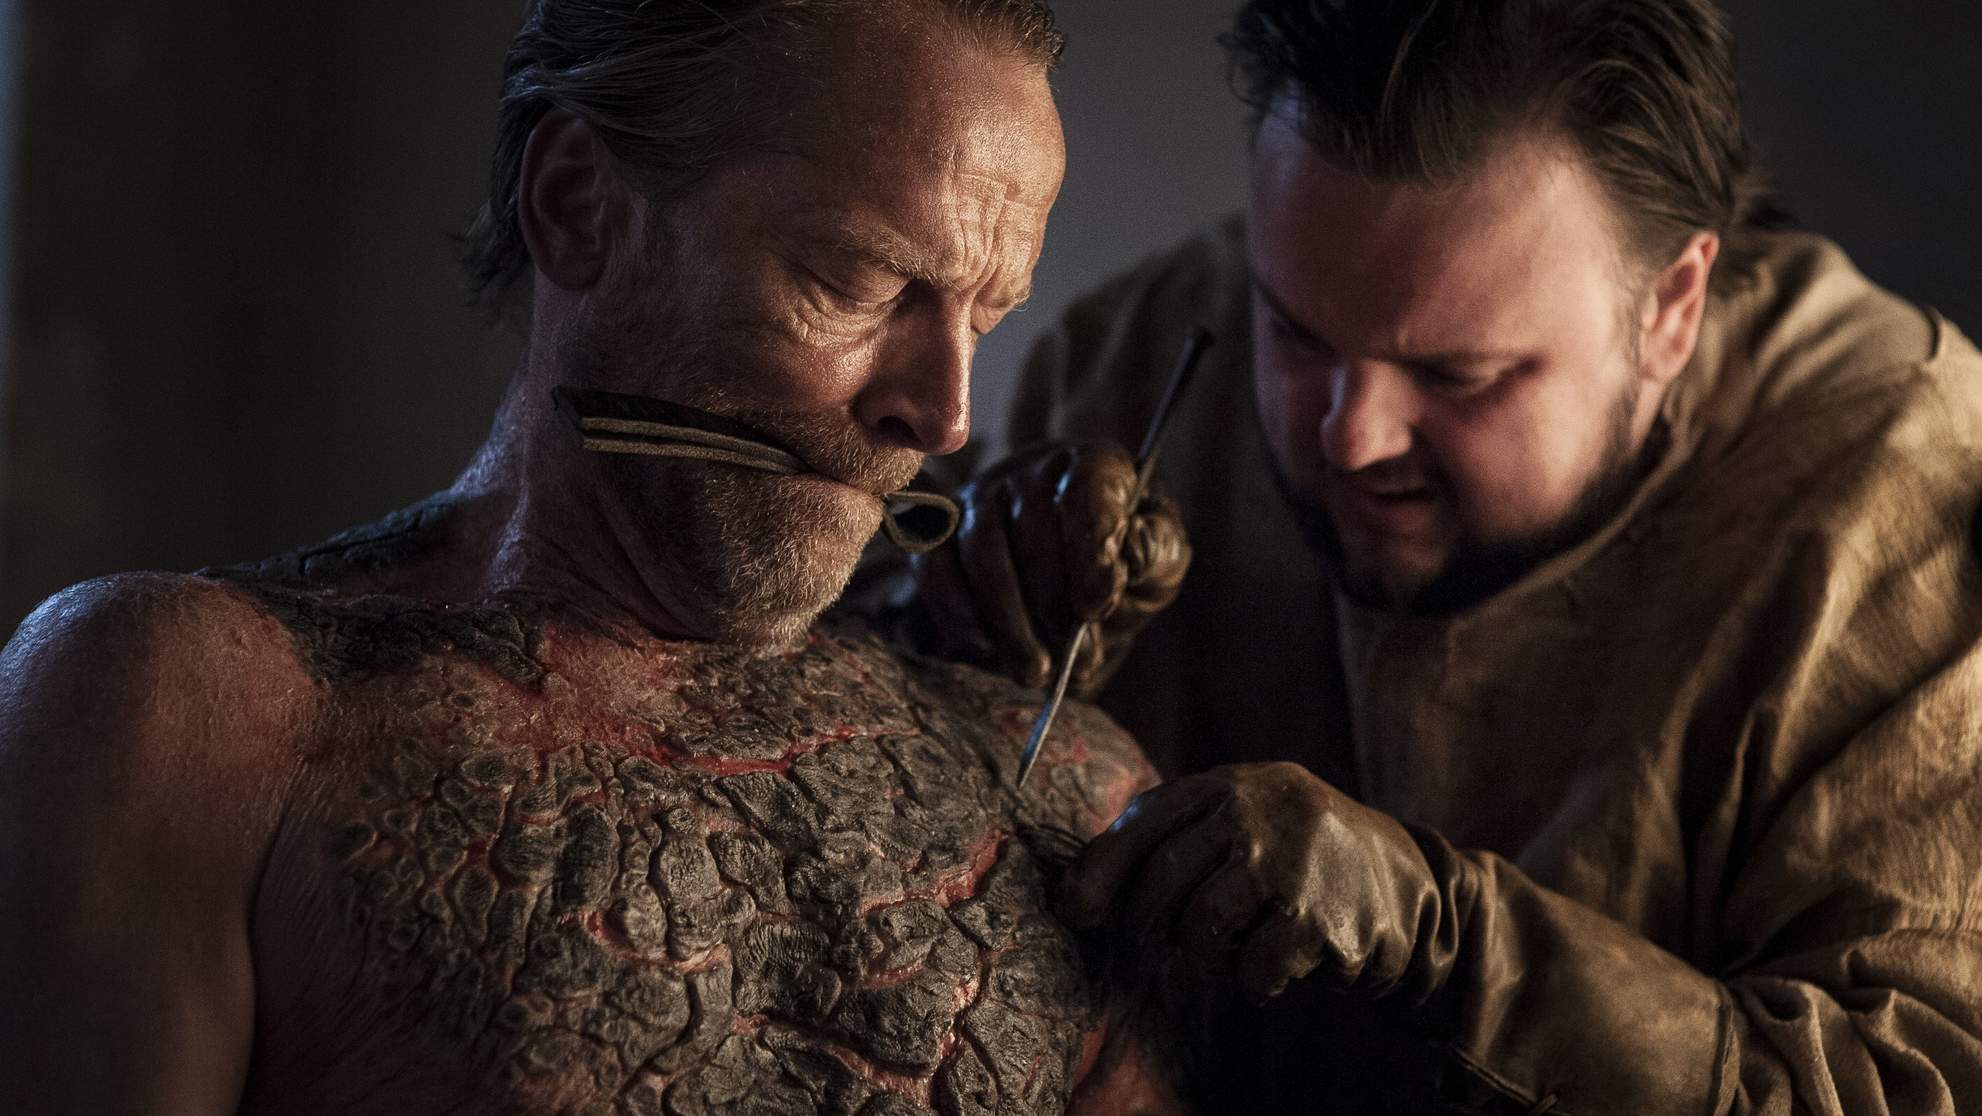 The Real History Behind That Gruesome Greyscale Treatment on Game of Thrones